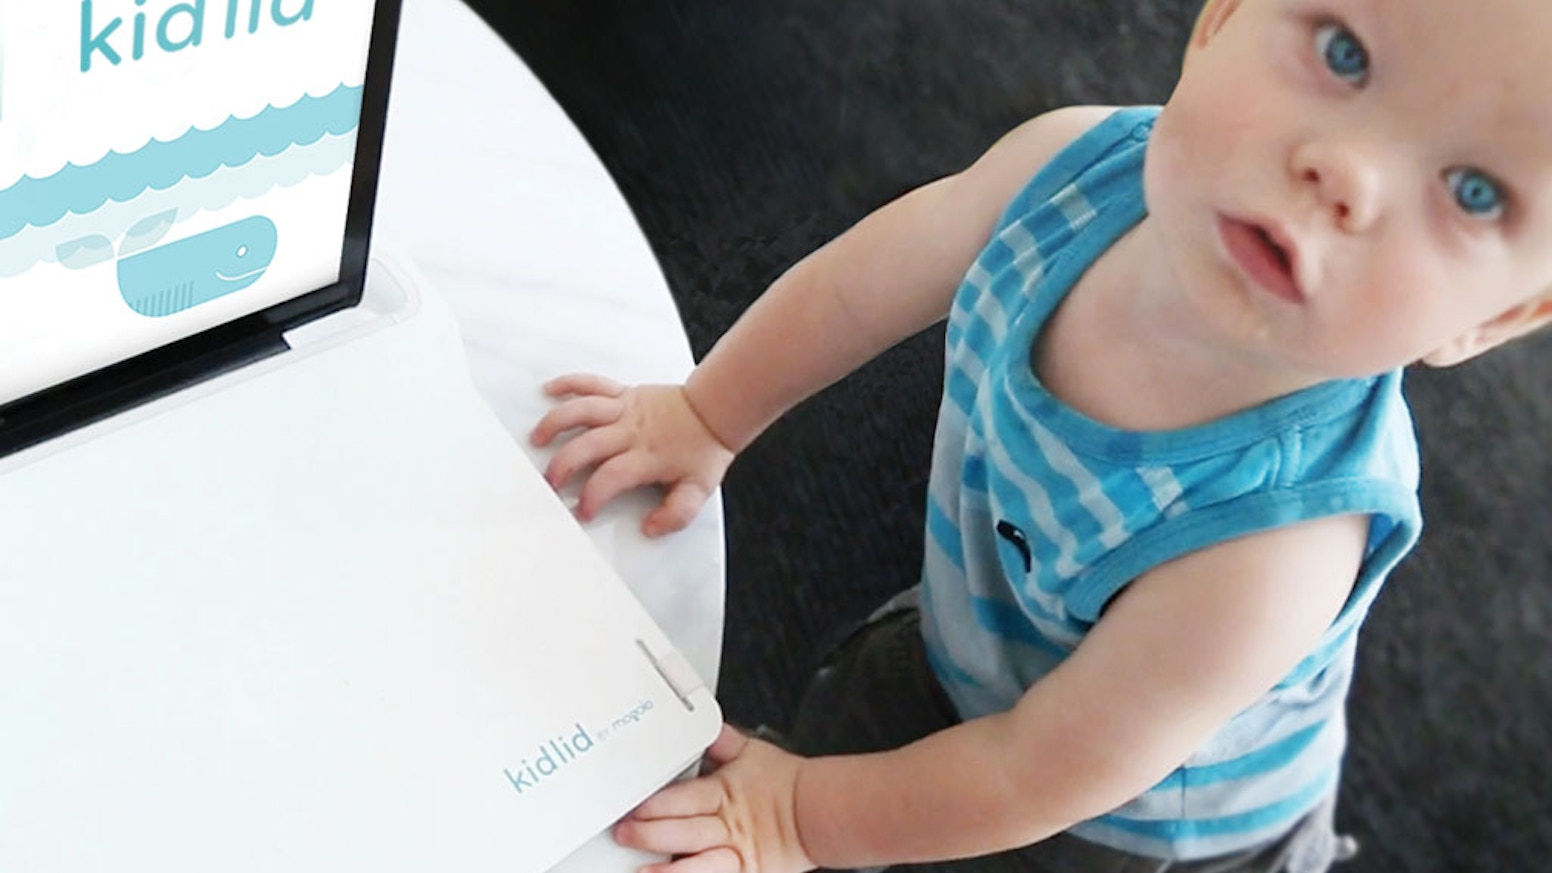 Kid Lid is a simple and innovative solution to protect the keyboard  when children use your laptop.